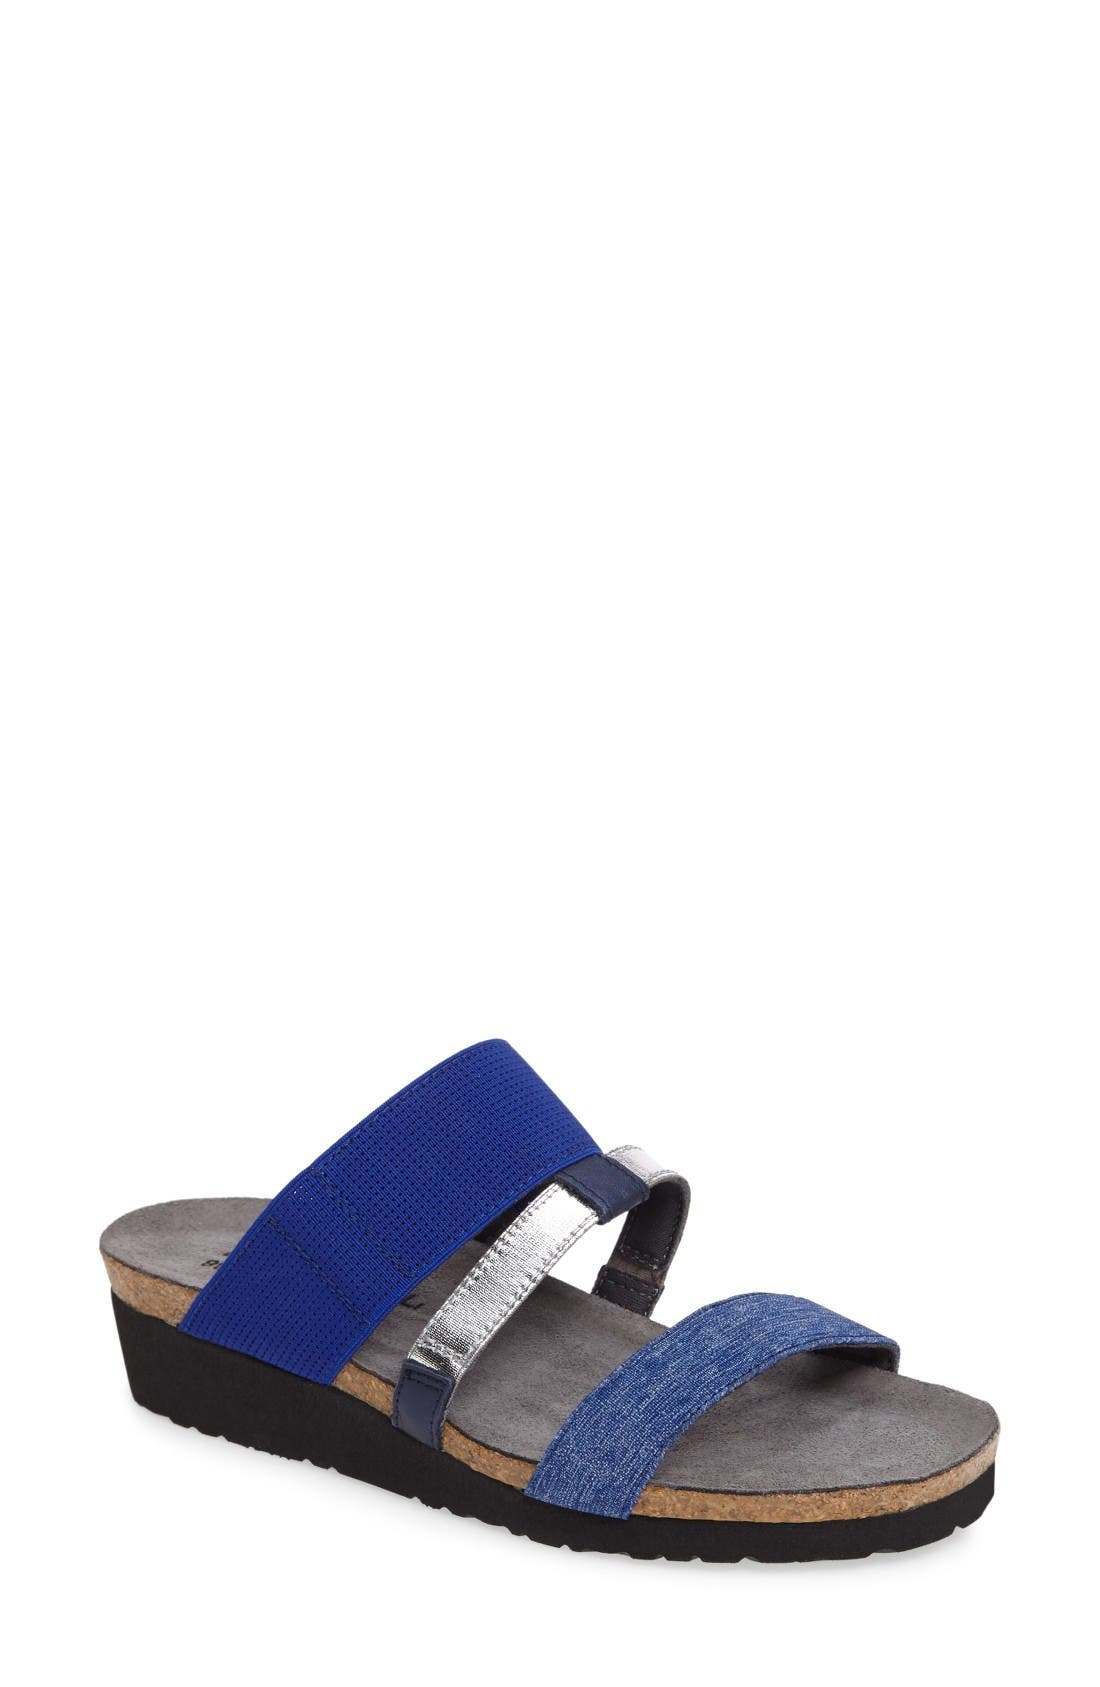 Alternate Image 1 Selected - Naot 'Brenda' Slip-On Sandal (Women)